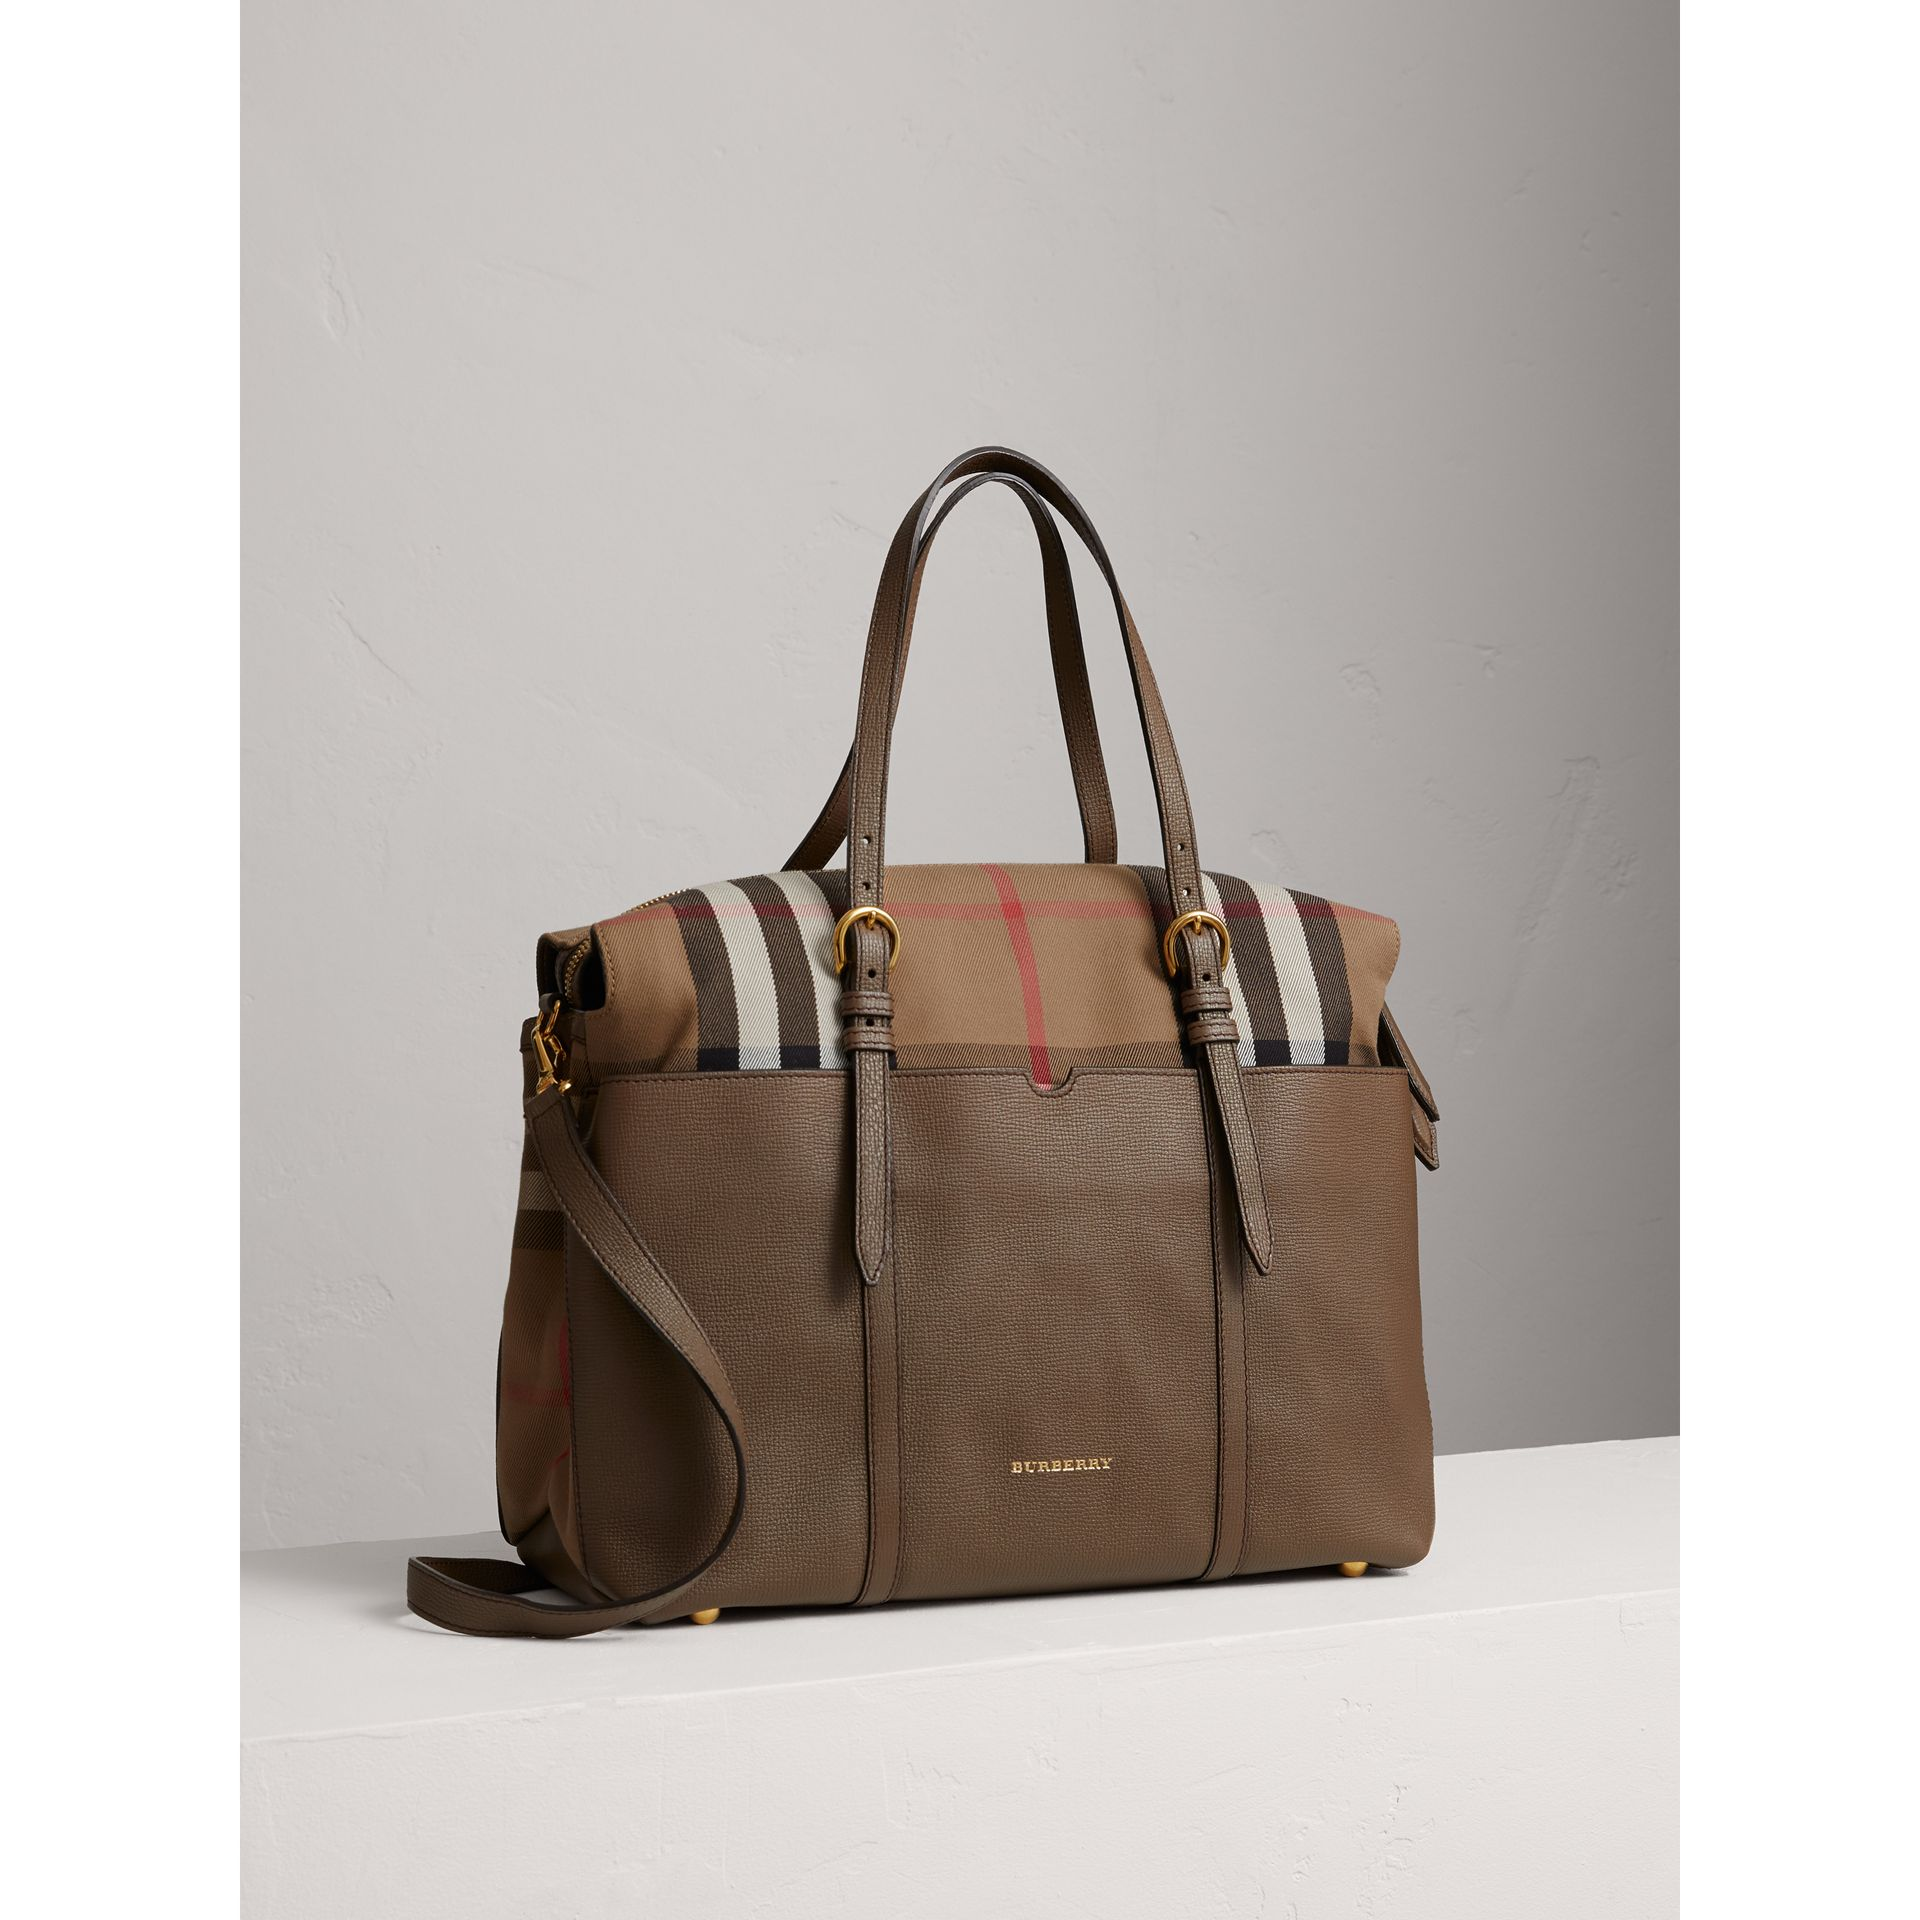 House Check and Leather Baby Changing Bag in Taupe Grey | Burberry - gallery image 5